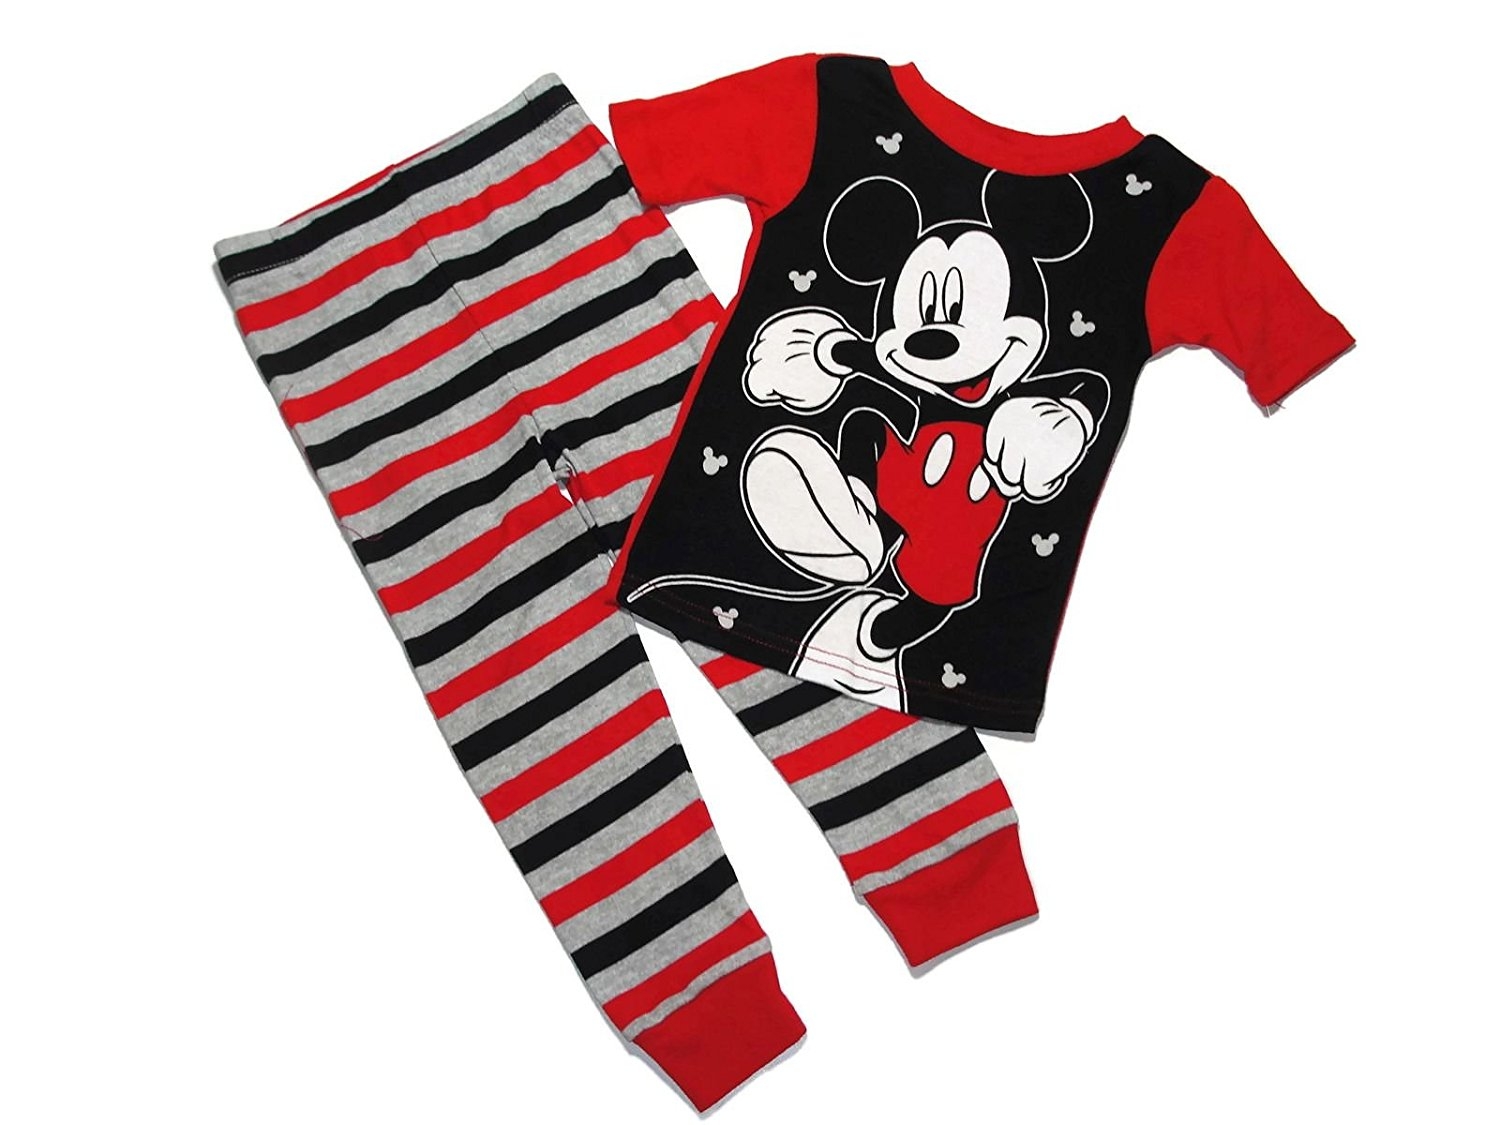 Disny Mickey Mouse Boy's Size 2T 4-Piece Graphic and Print Pajama Pants Set